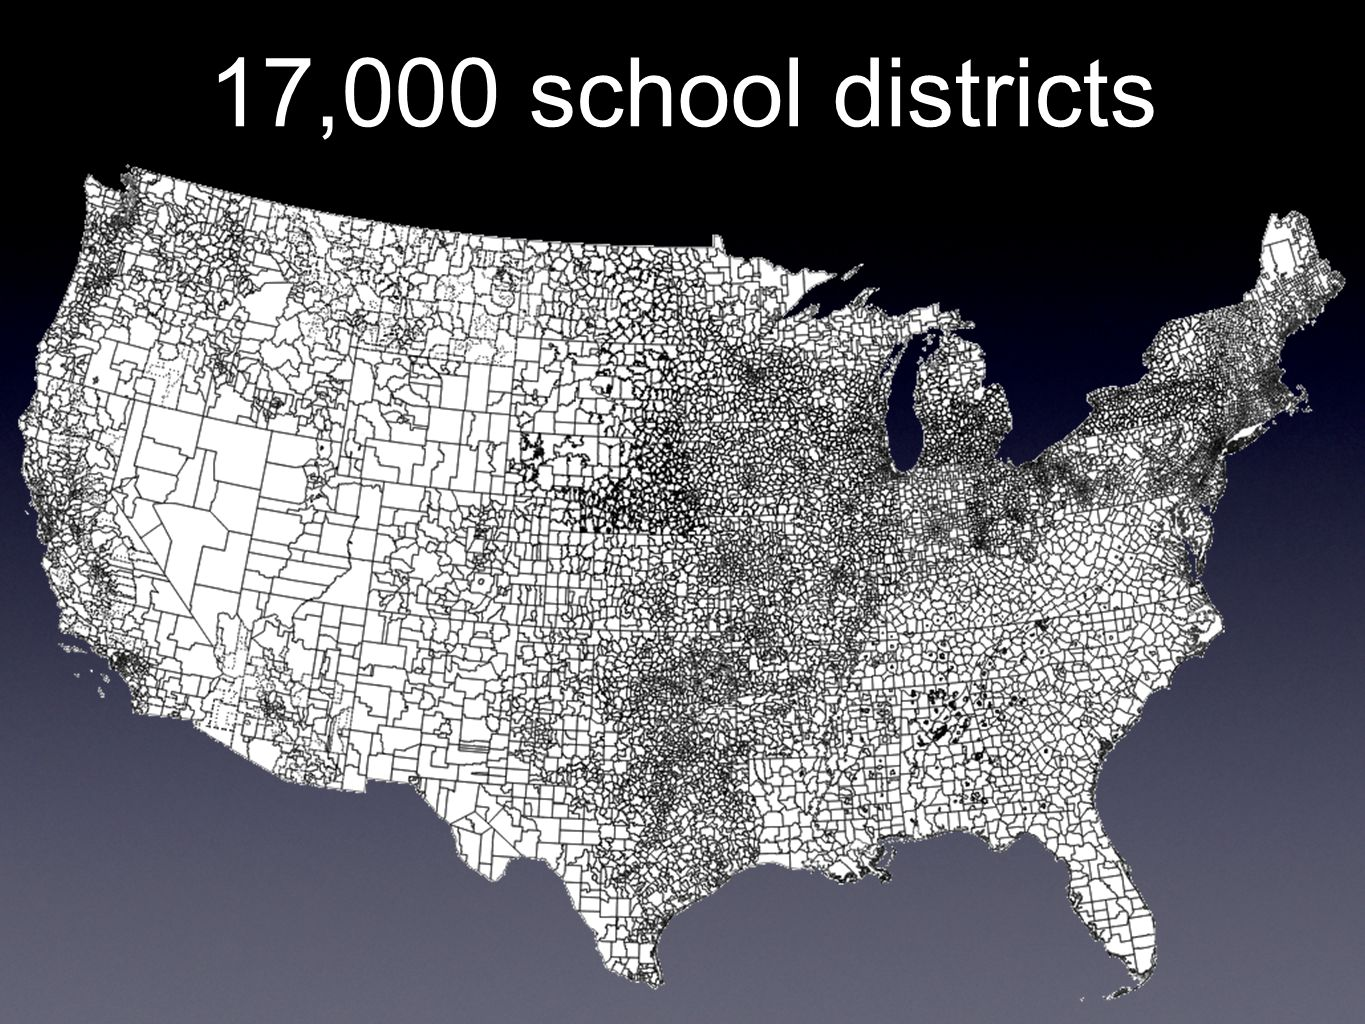 17,000 school districts